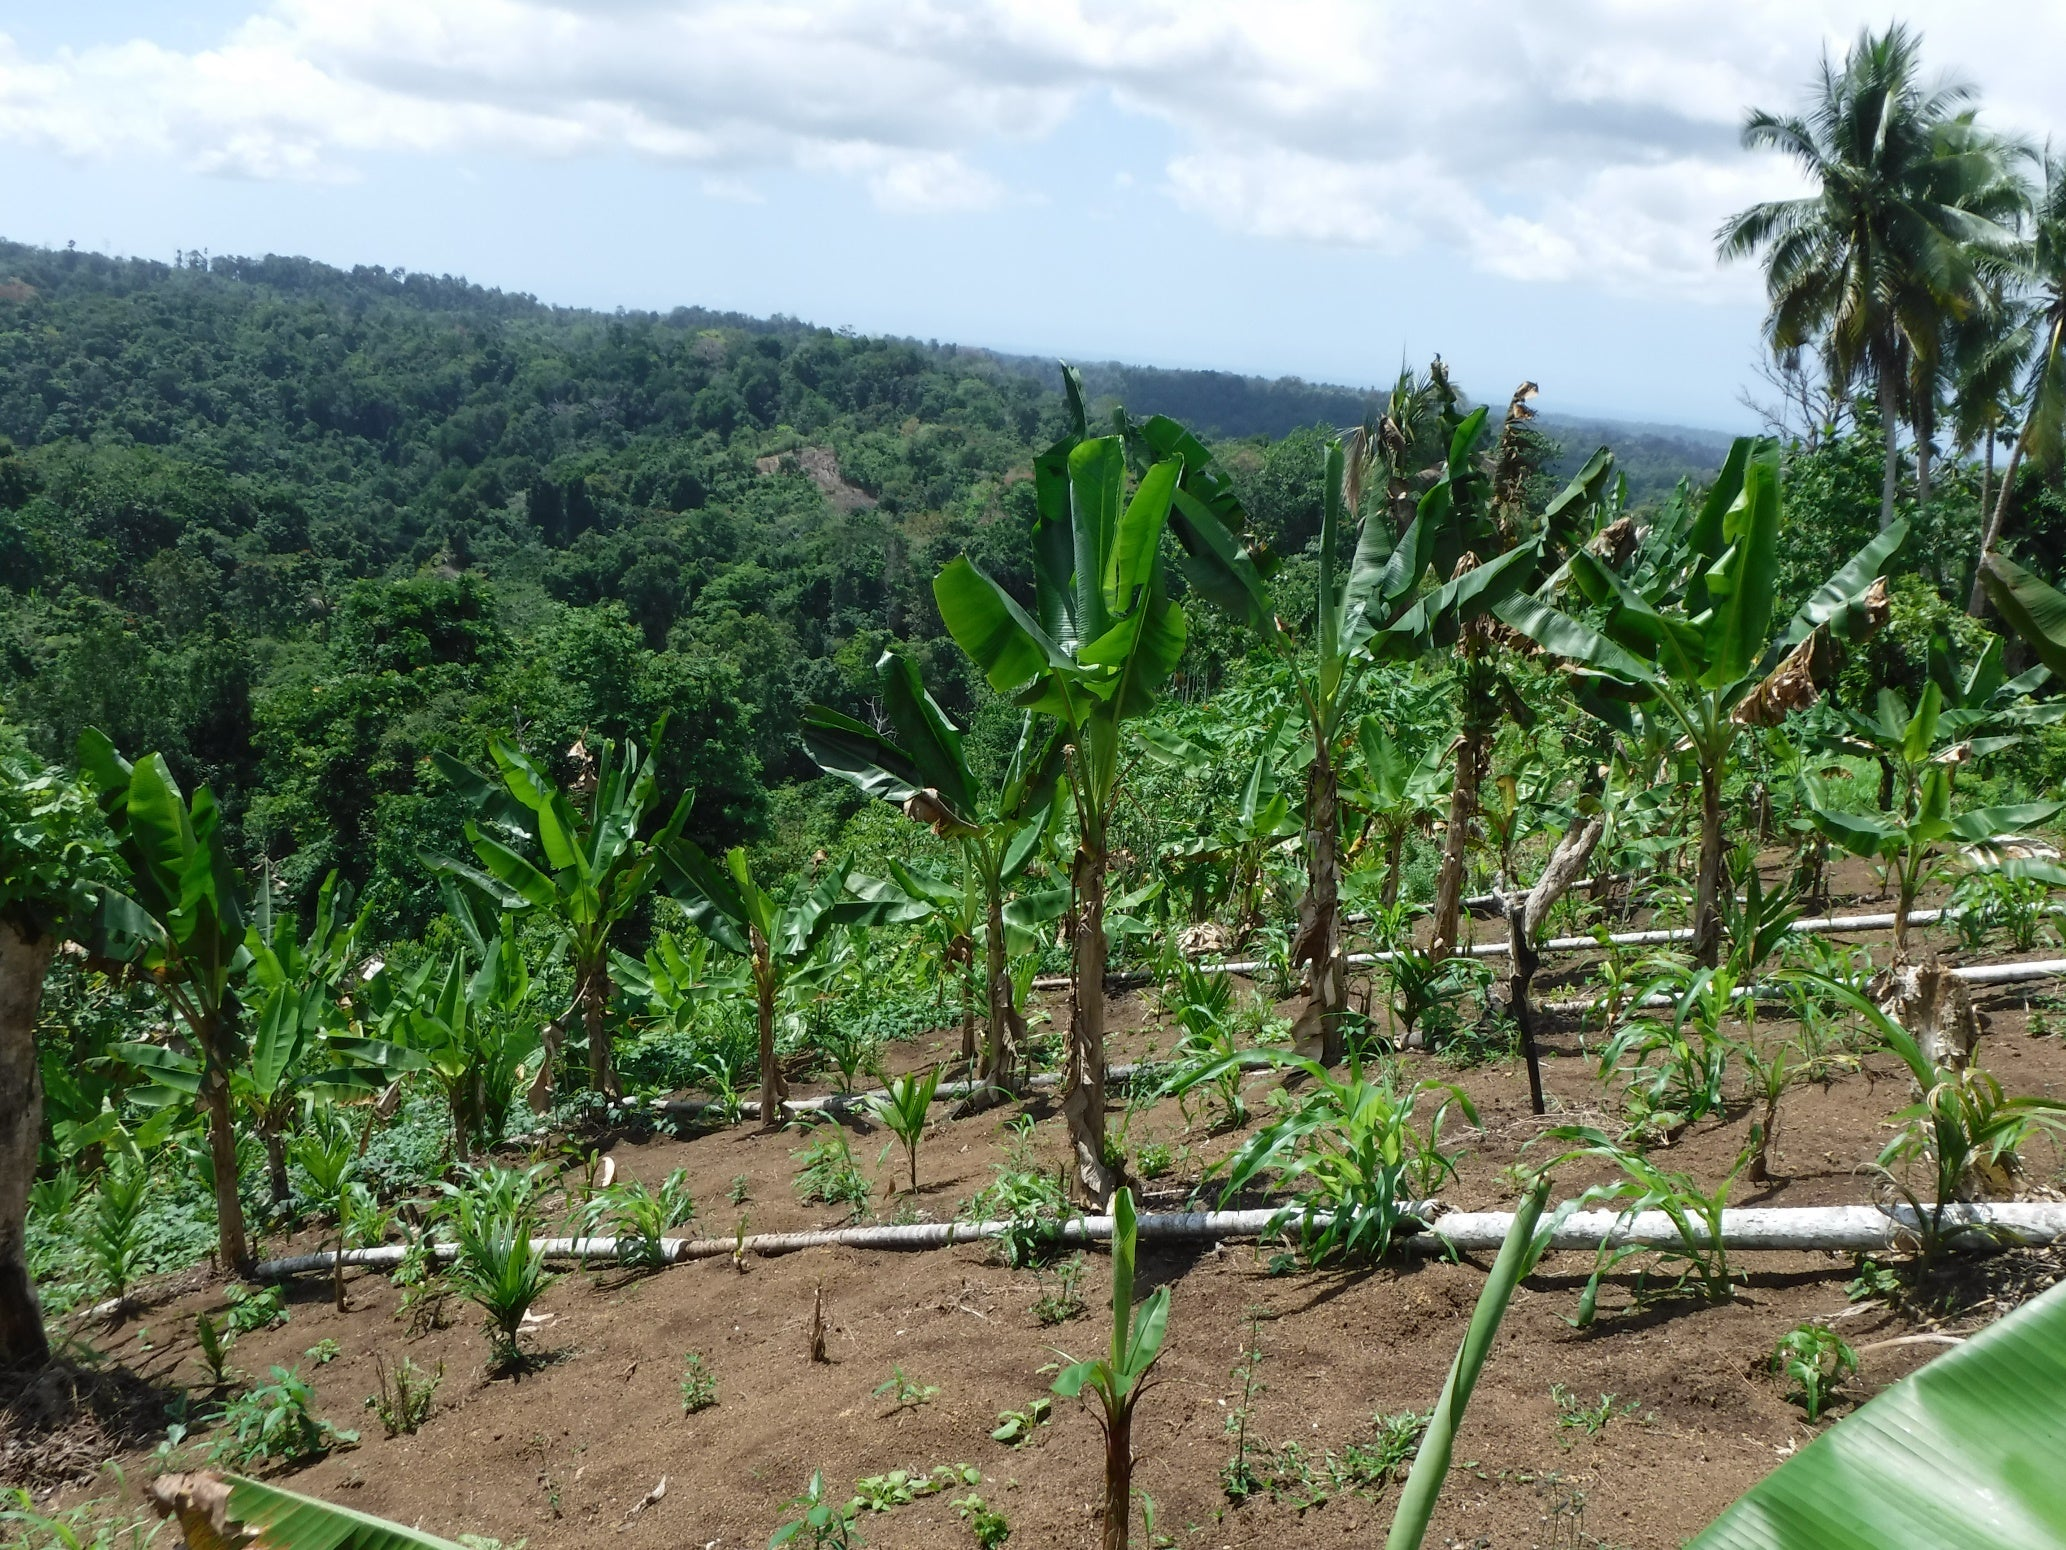 A food garden in Ohu, Papua New Guinea. The vast majority of people in Papua New Guinea rely on their garden for their daily food and income. Credit: Mirjam Hazenbosch.